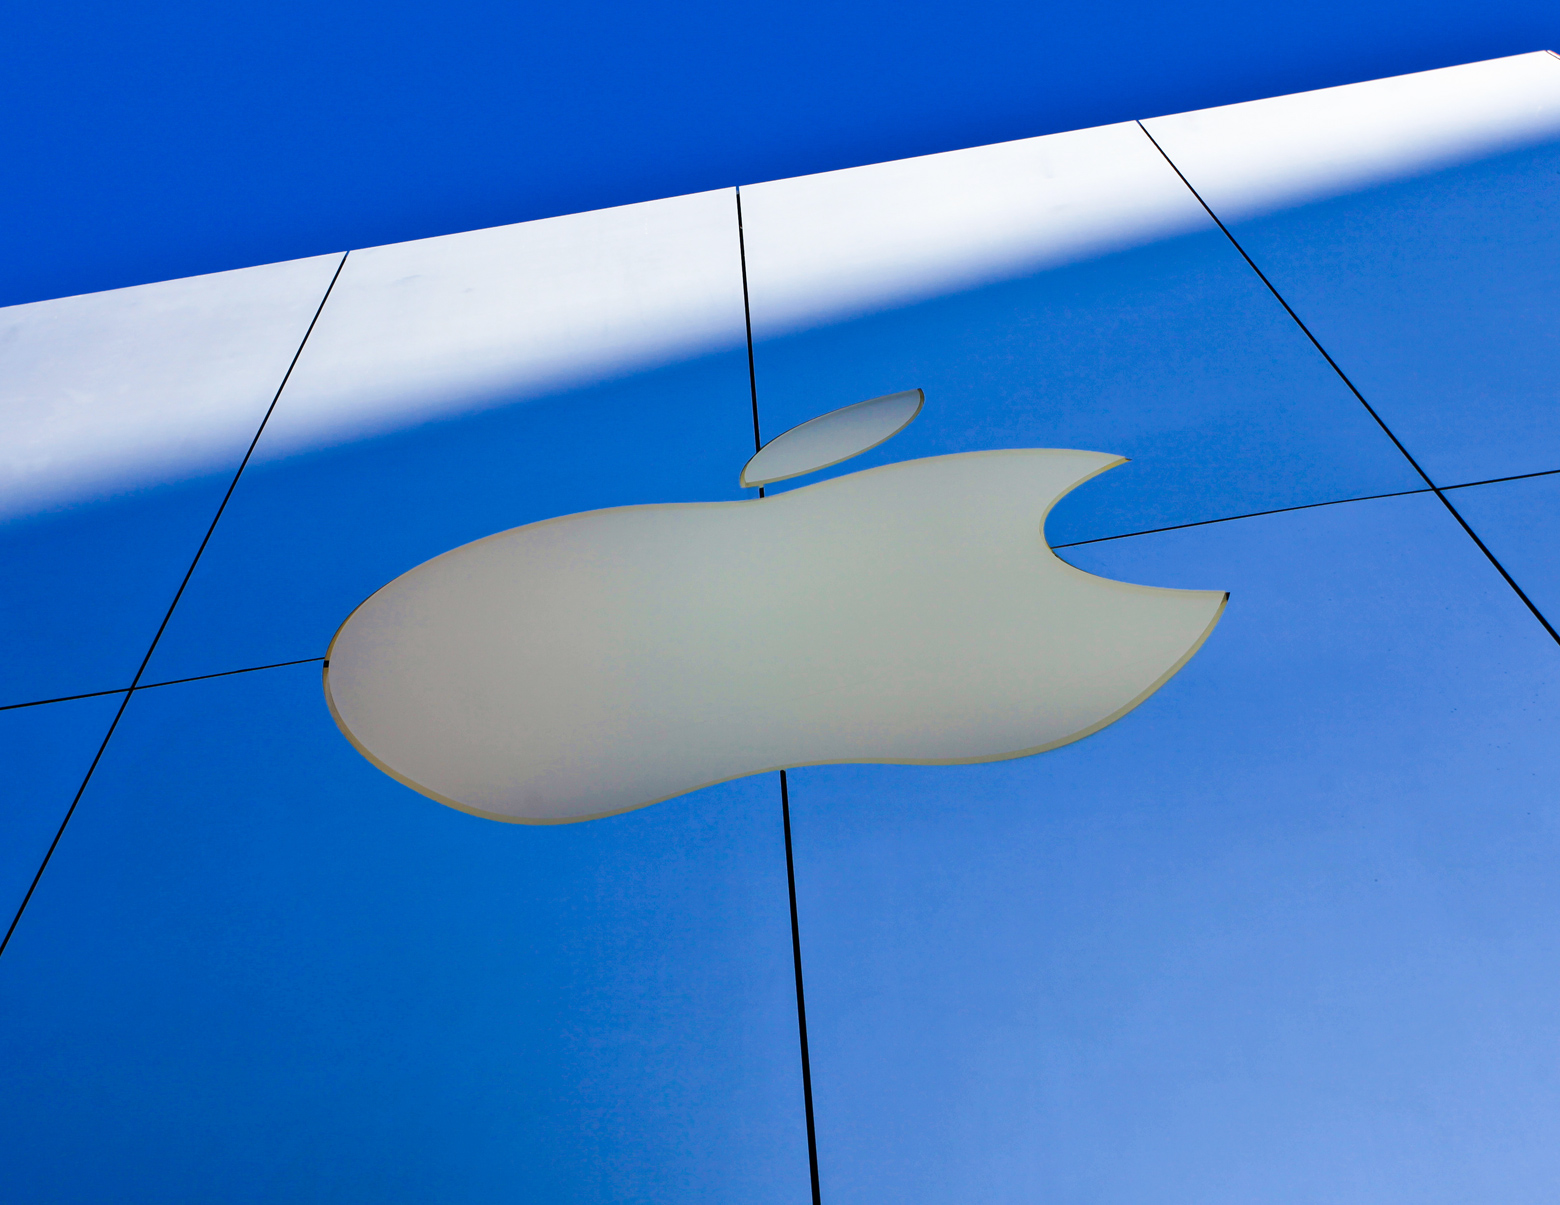 Apple hits Qualcomm with $1 billion lawsuit over patent ...